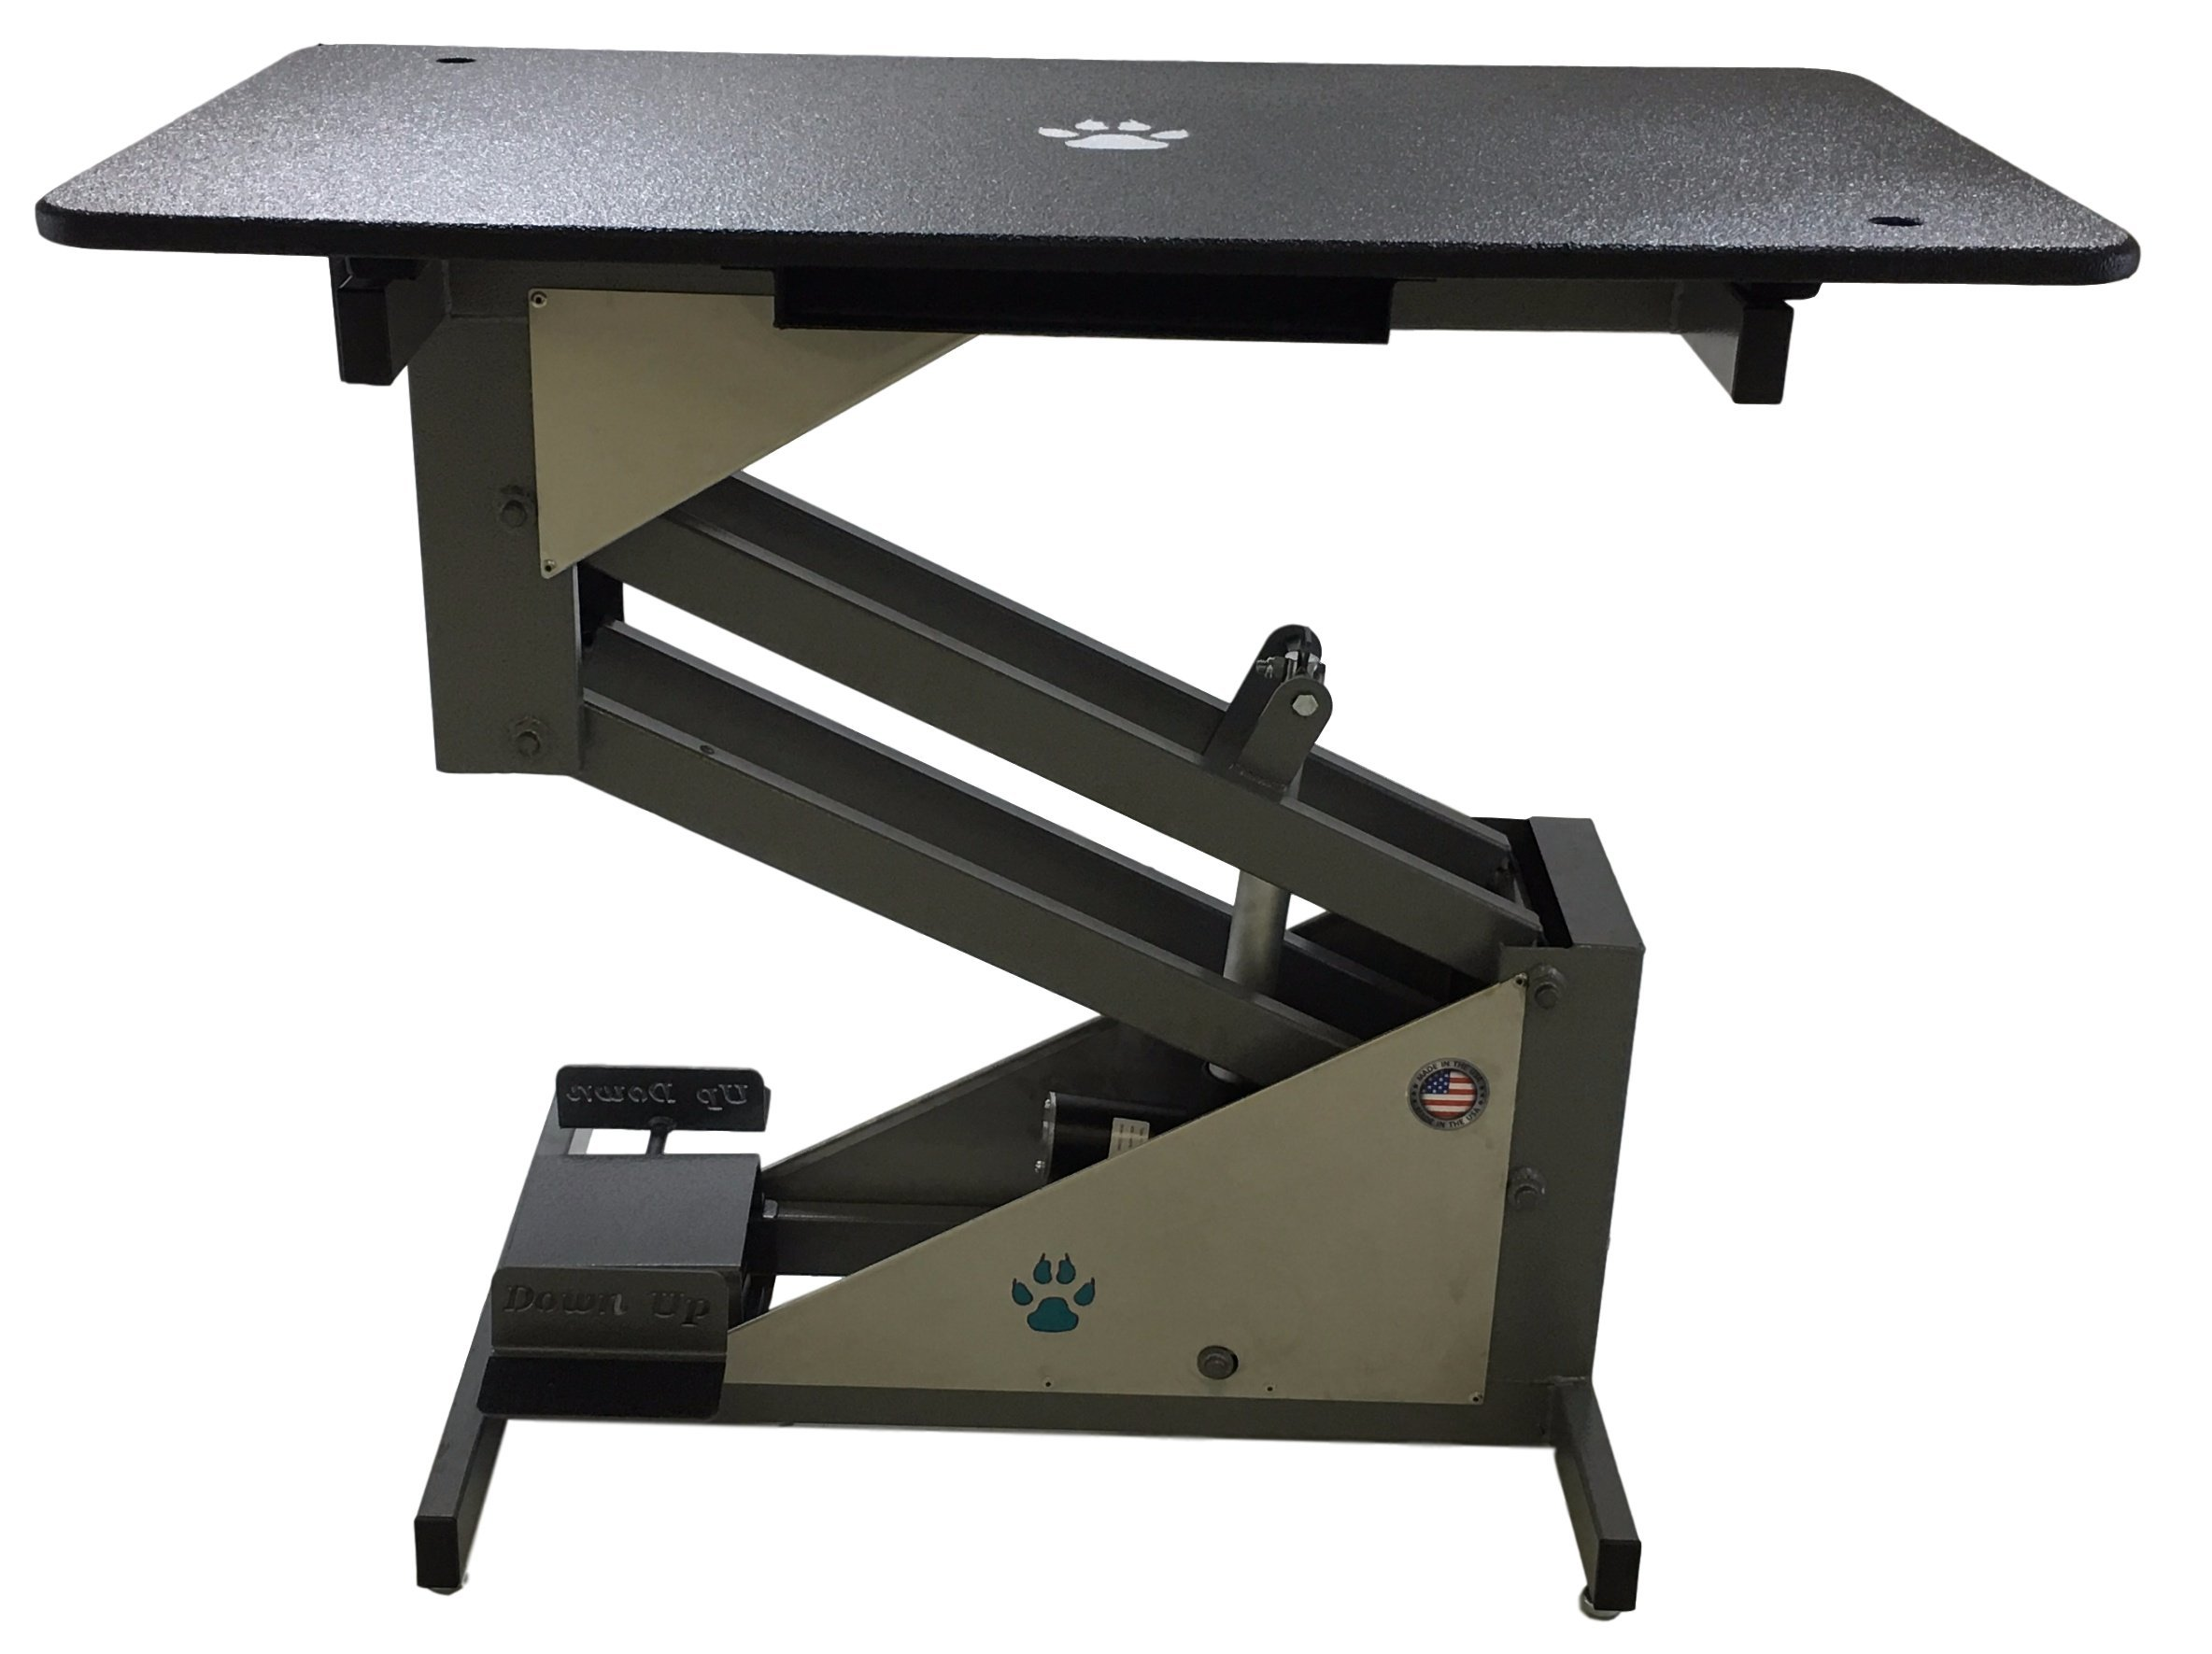 Groomer's Best Electric Grooming Table for Pets, 24 by 42-Inch